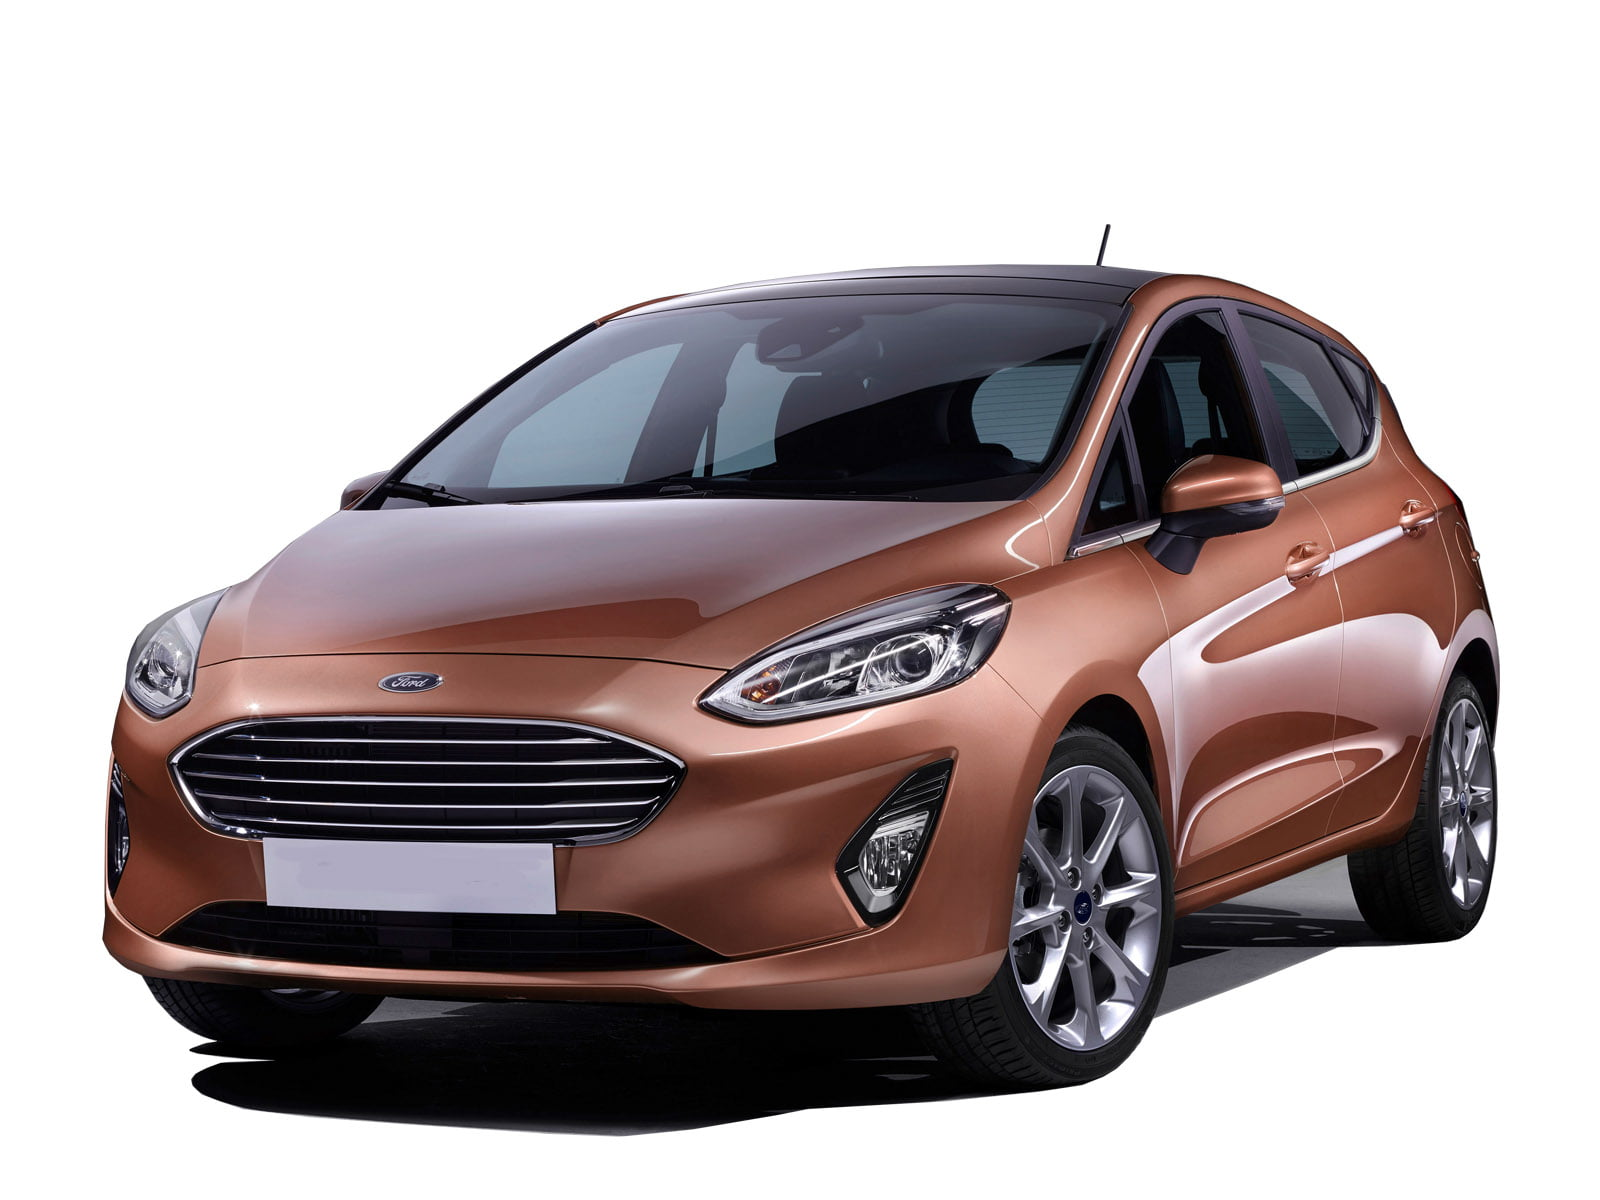 Ford Fiesta 1.1 63kW Trend Navigation Pack 5d.